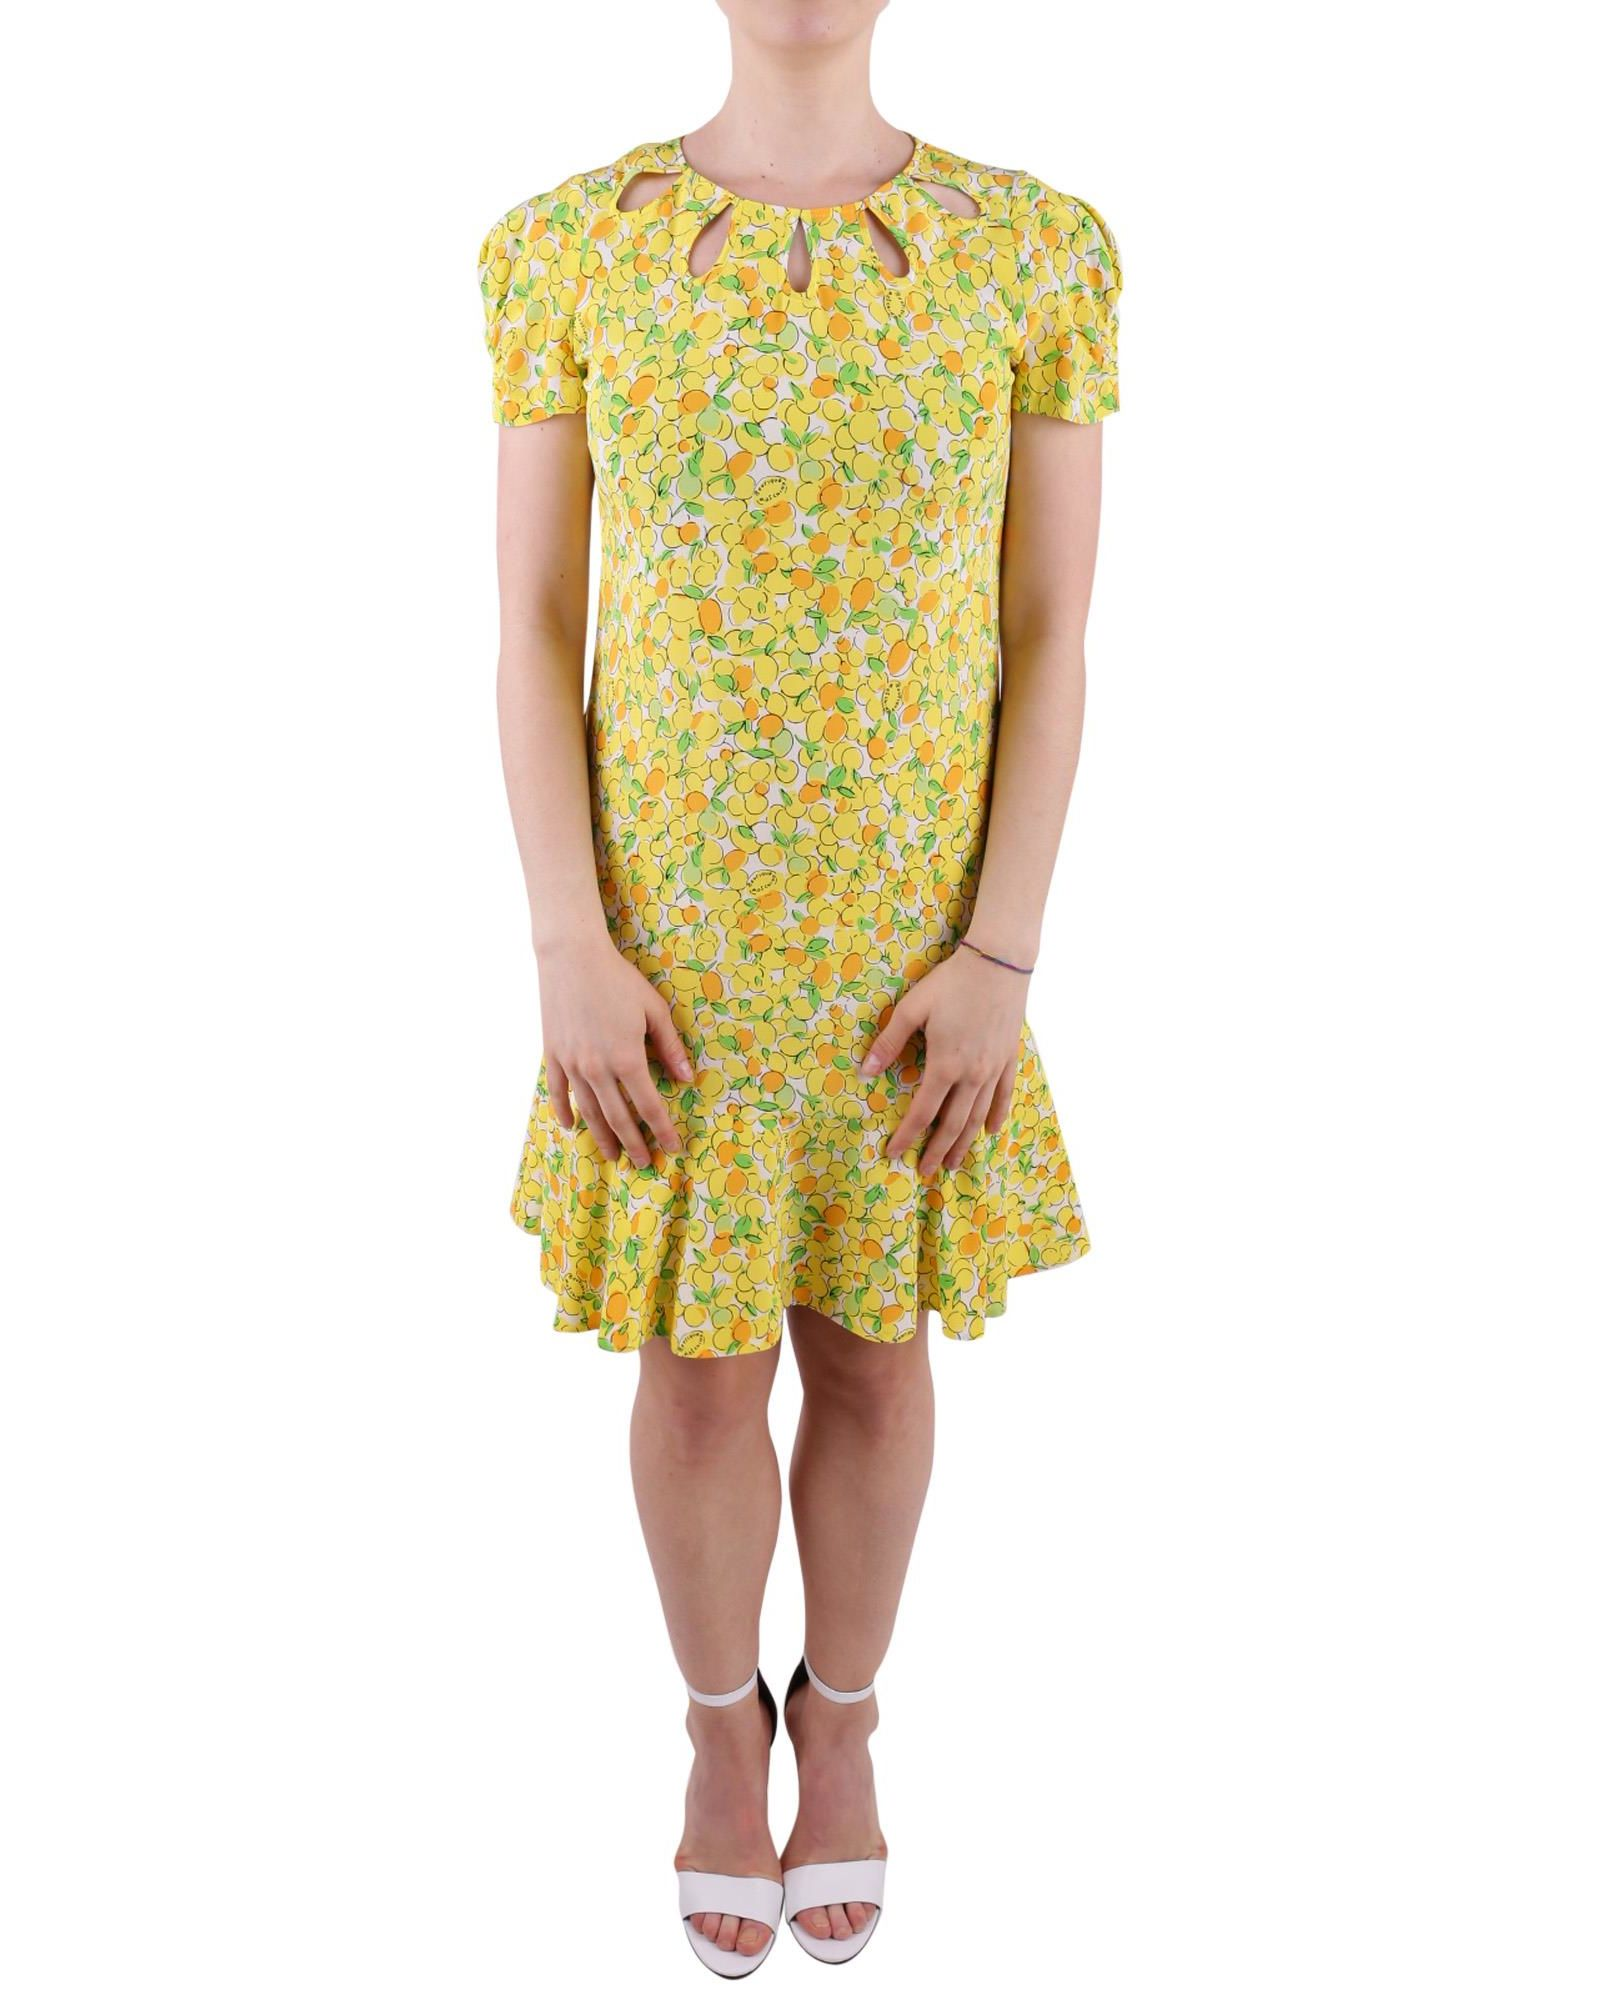 BOUTIQUE MOSCHINO LEMON PRINT SILK DRESS